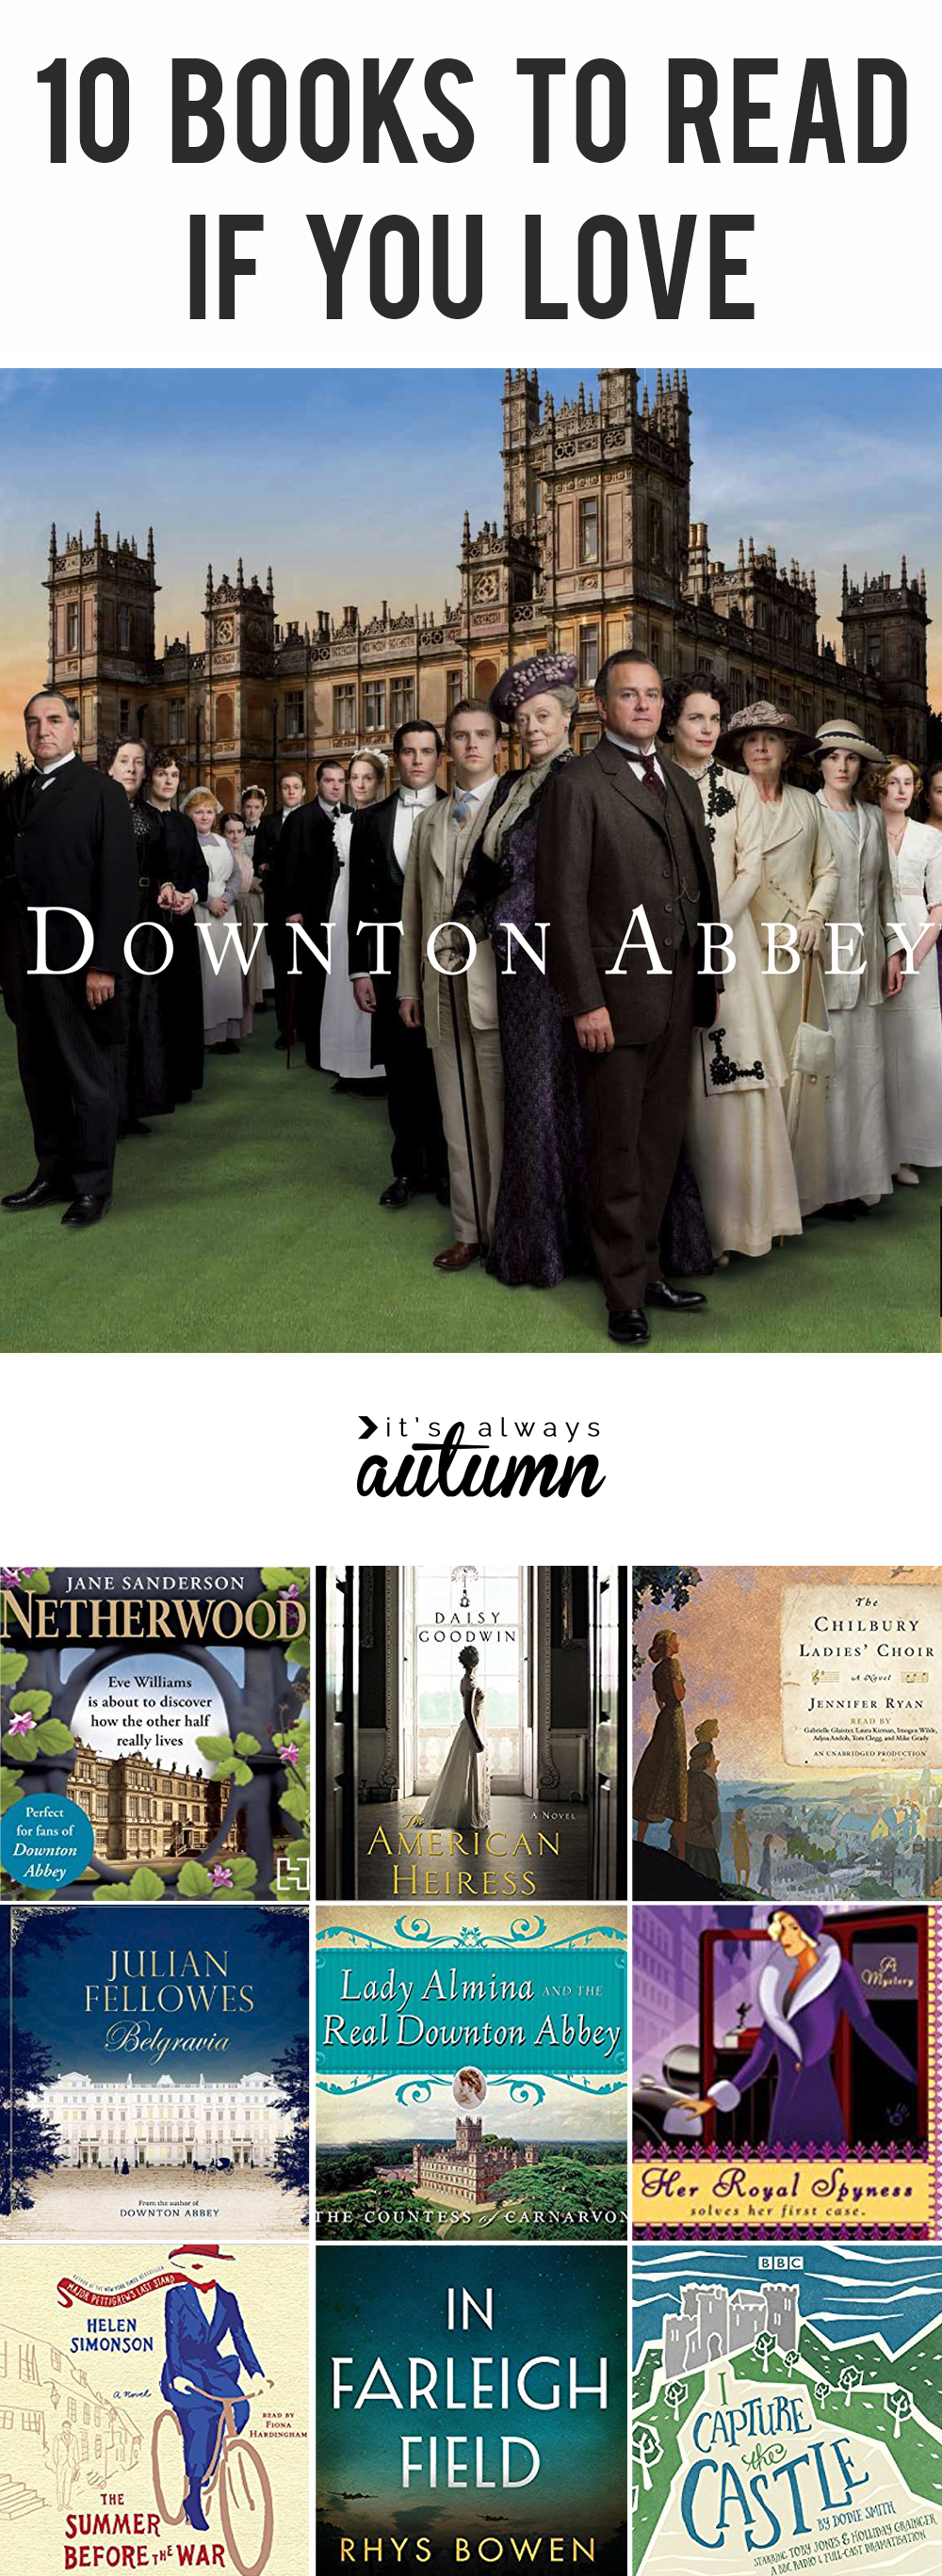 Downton Abbey photo, and collage of books similar to Downton abbey